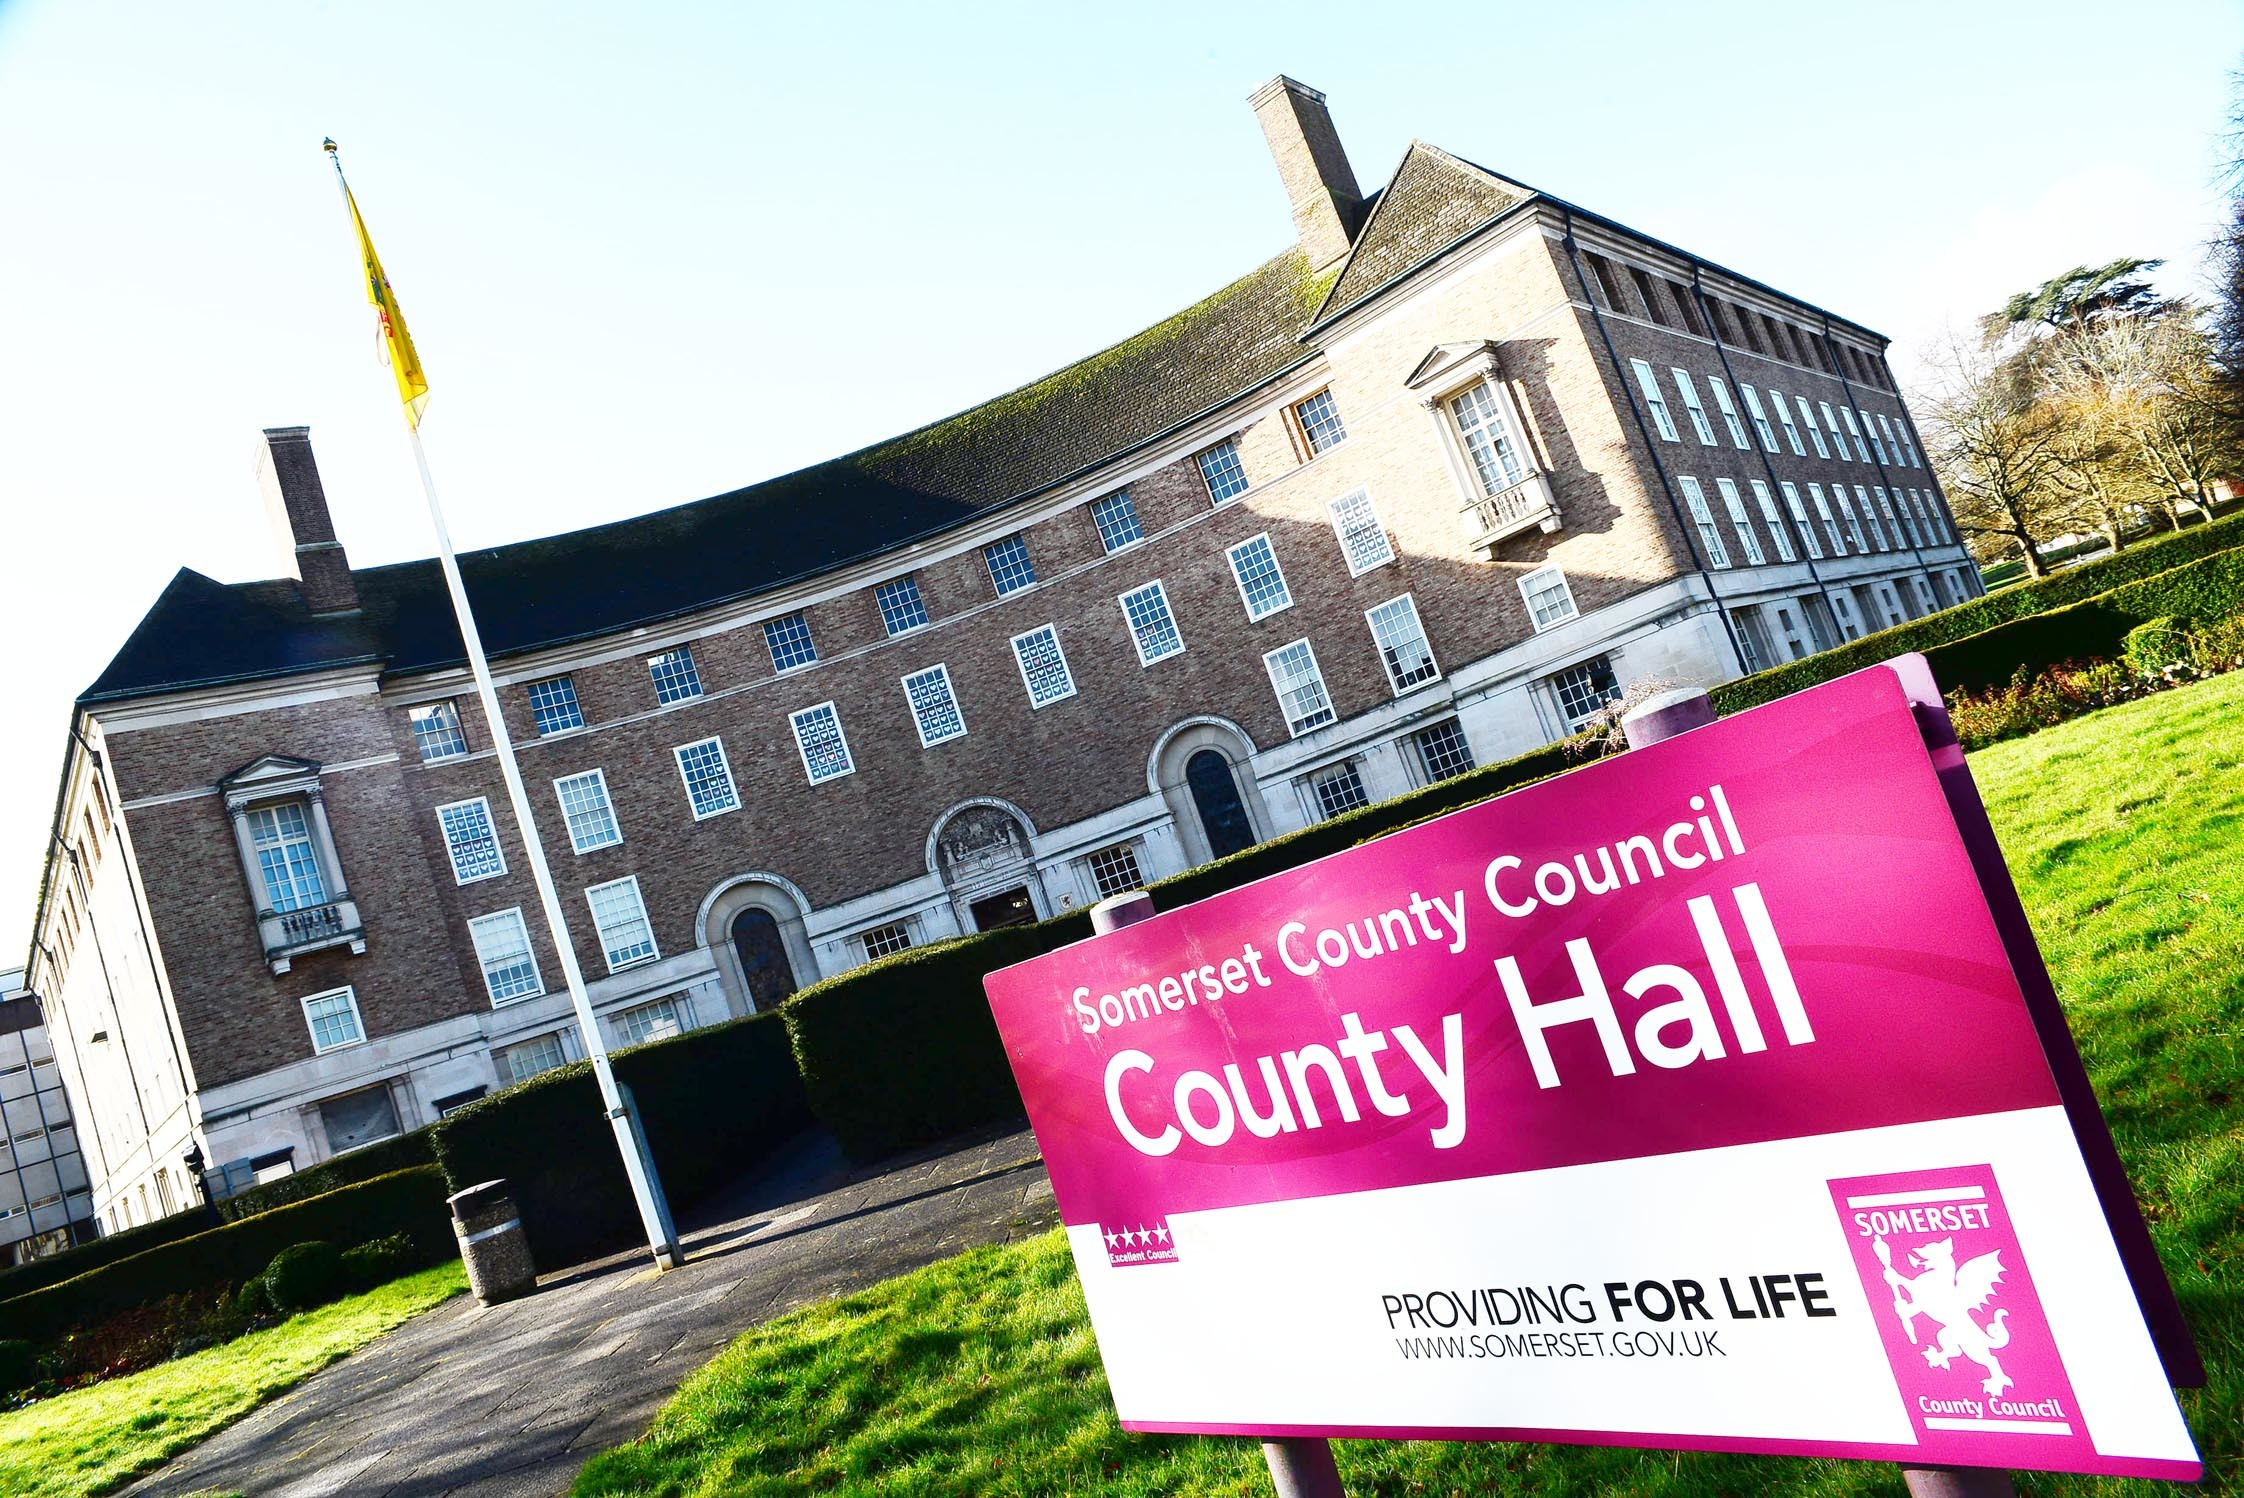 MEETING: Full council is set to take place on Wednesday, February 22